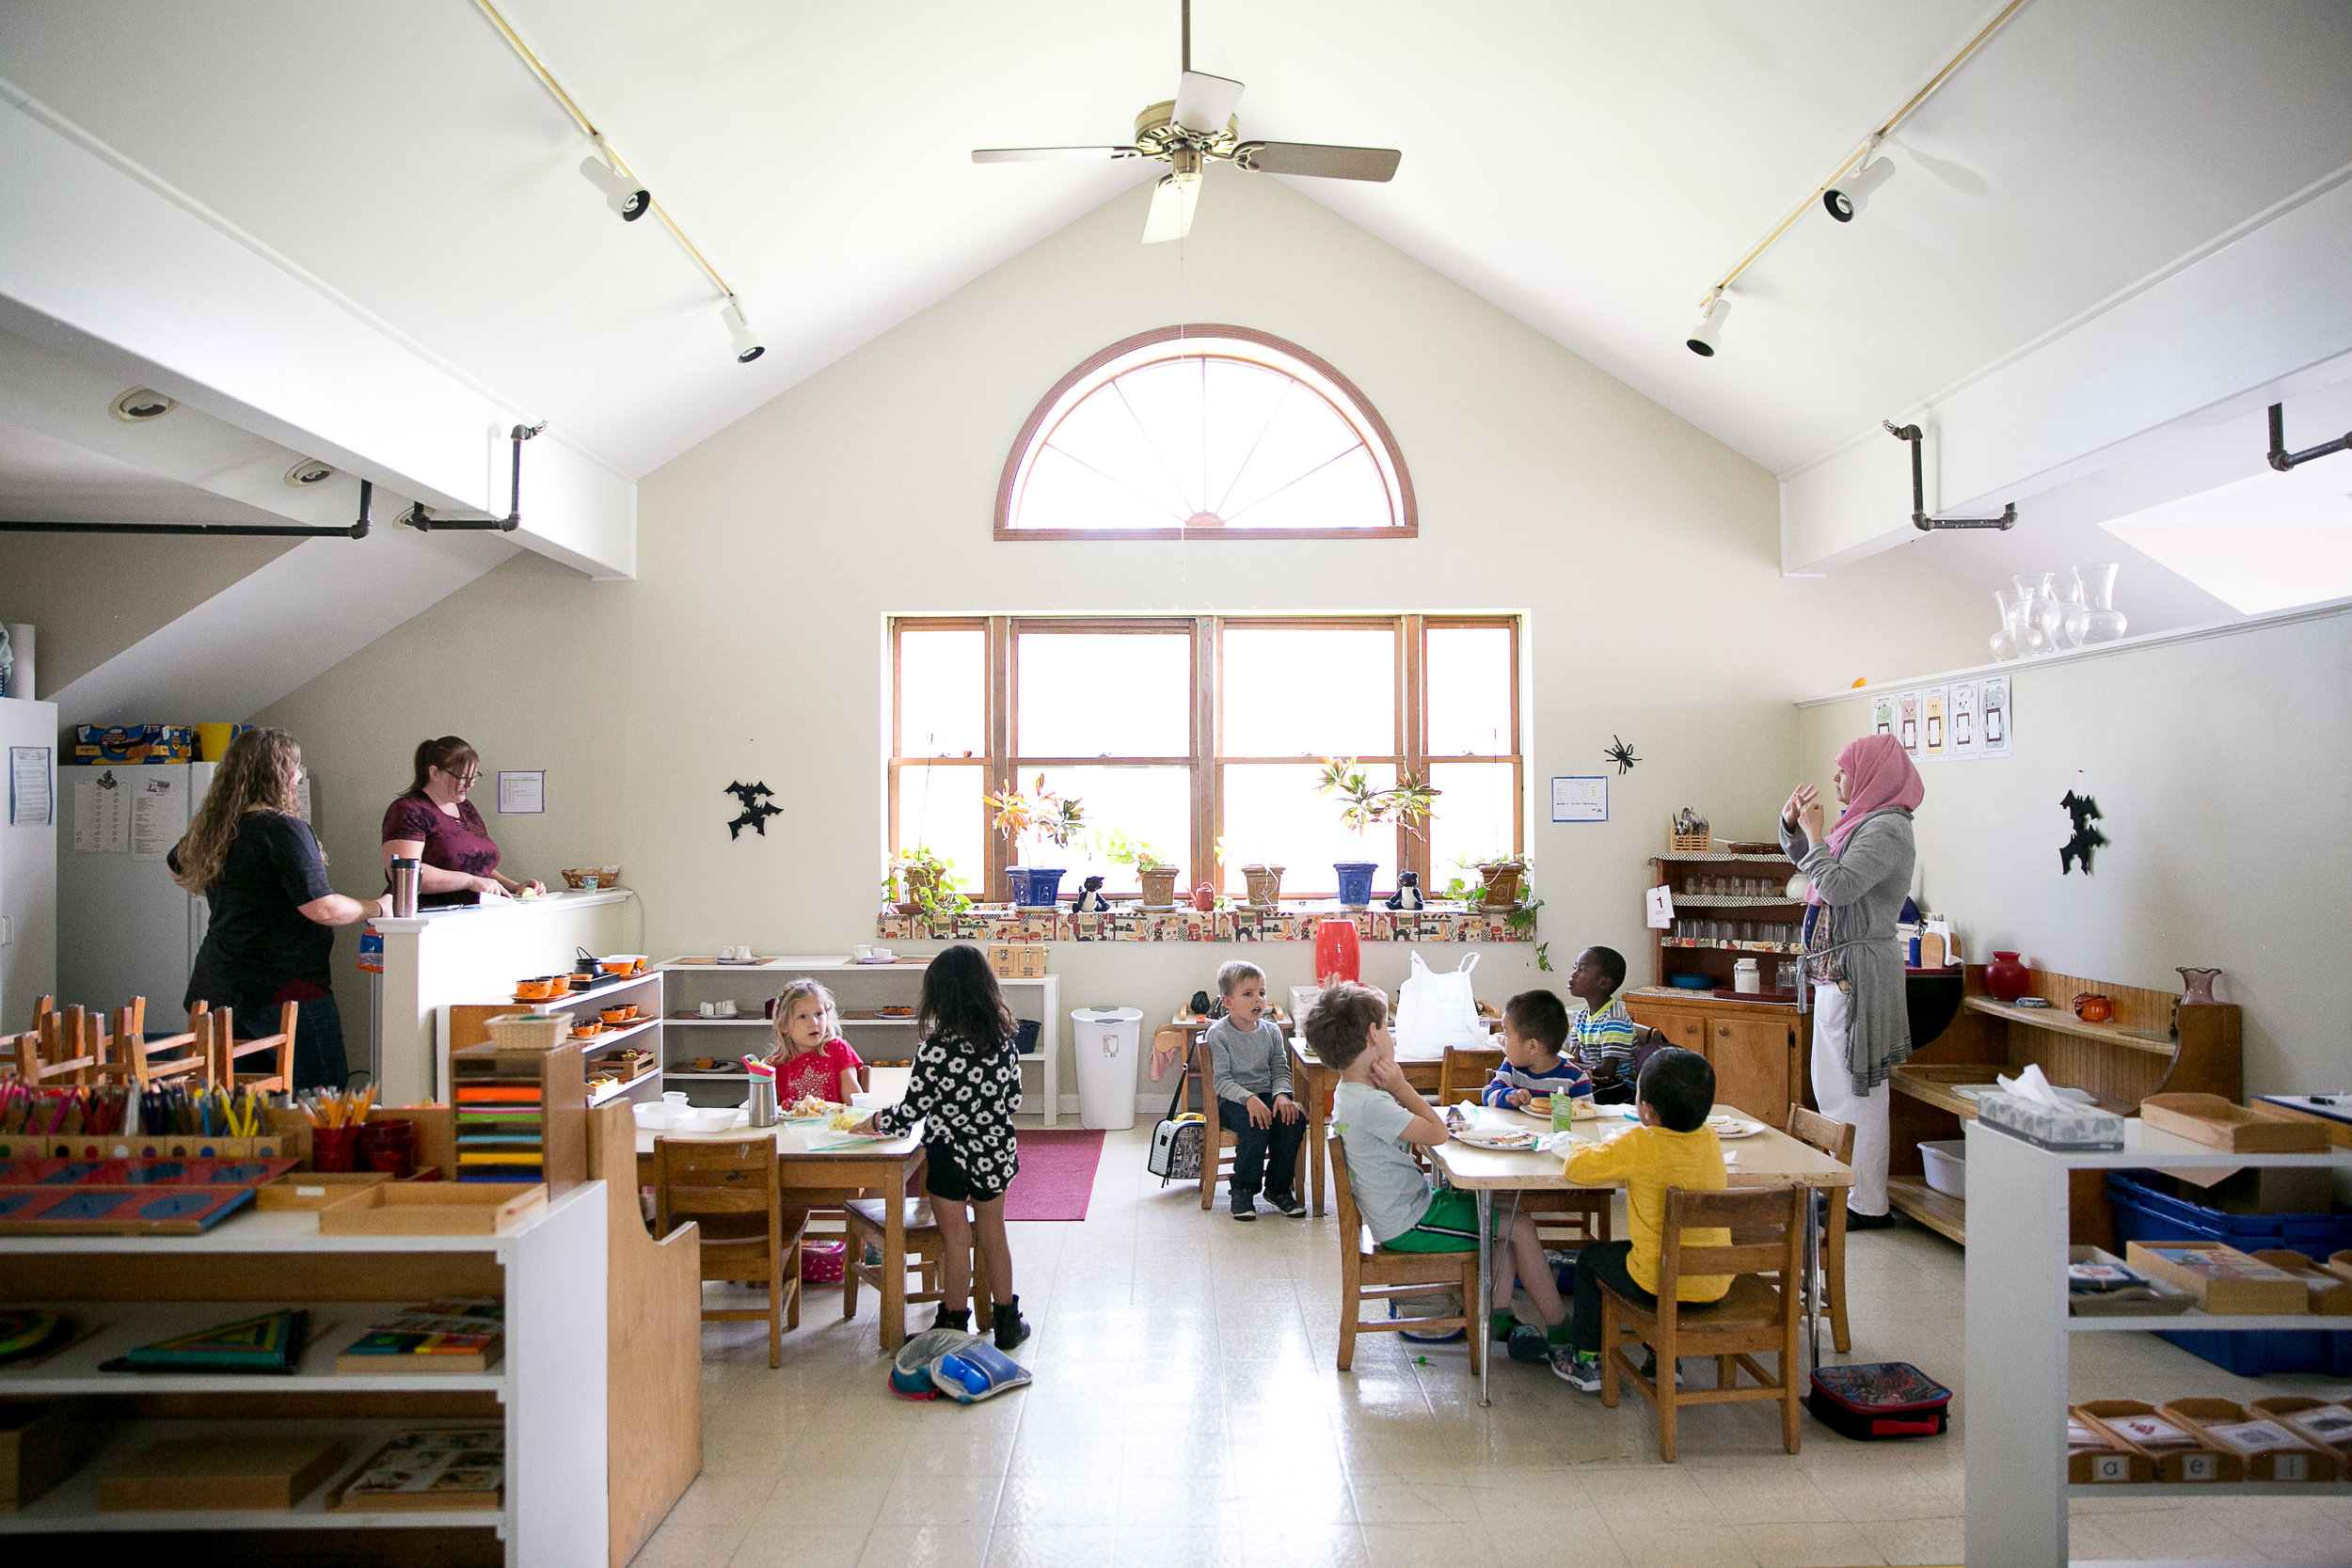 Rosehill_Montessori_Preschool_Kindergarten_classroom_lunch_learning_curriculum.jpg